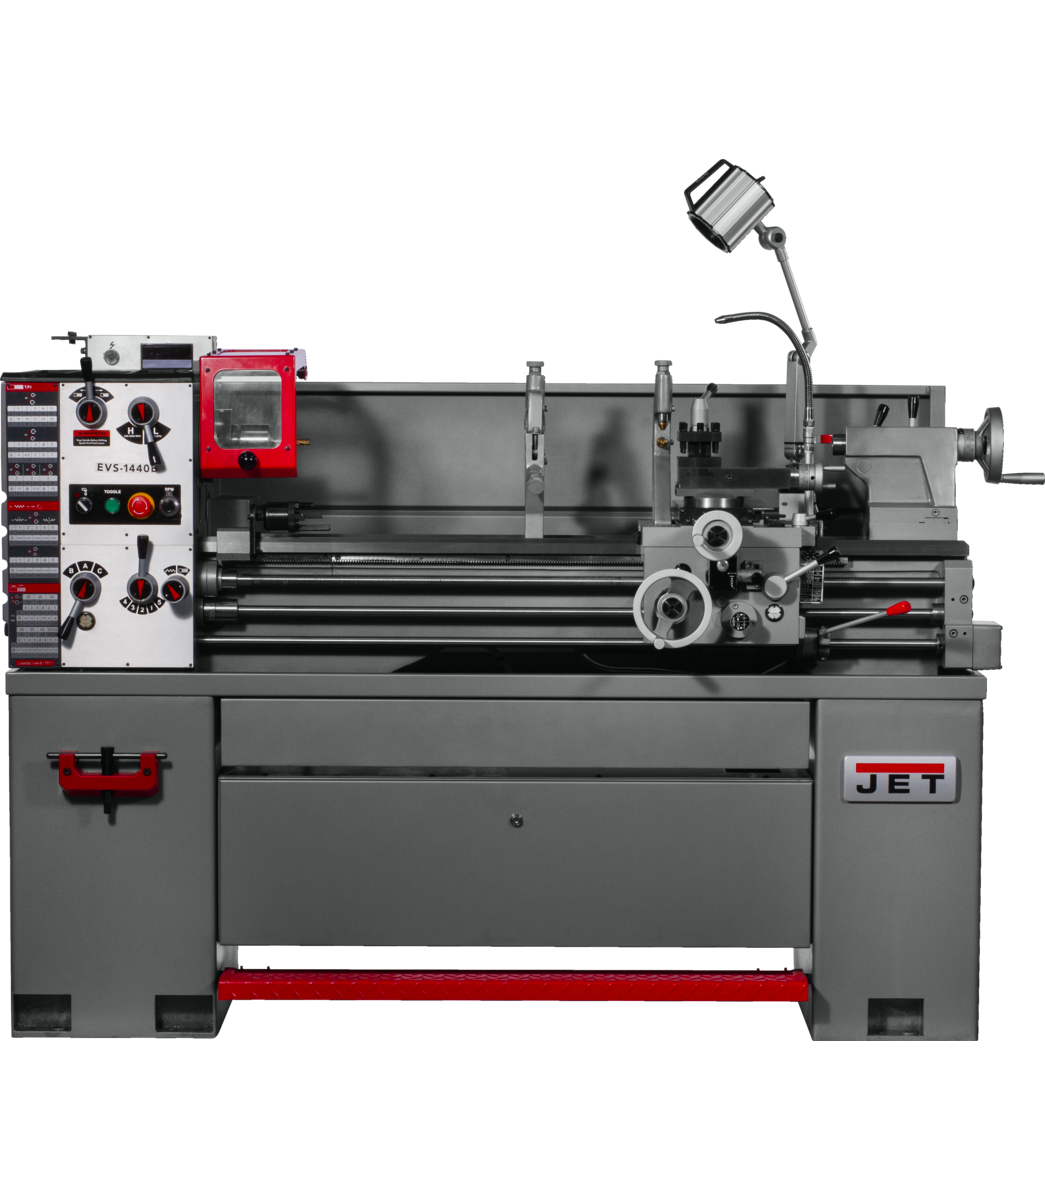 EVS-1440 Electronic Variable Speed lathe with Acu-Rite 203 DRO and Taper Attachment, 3HP